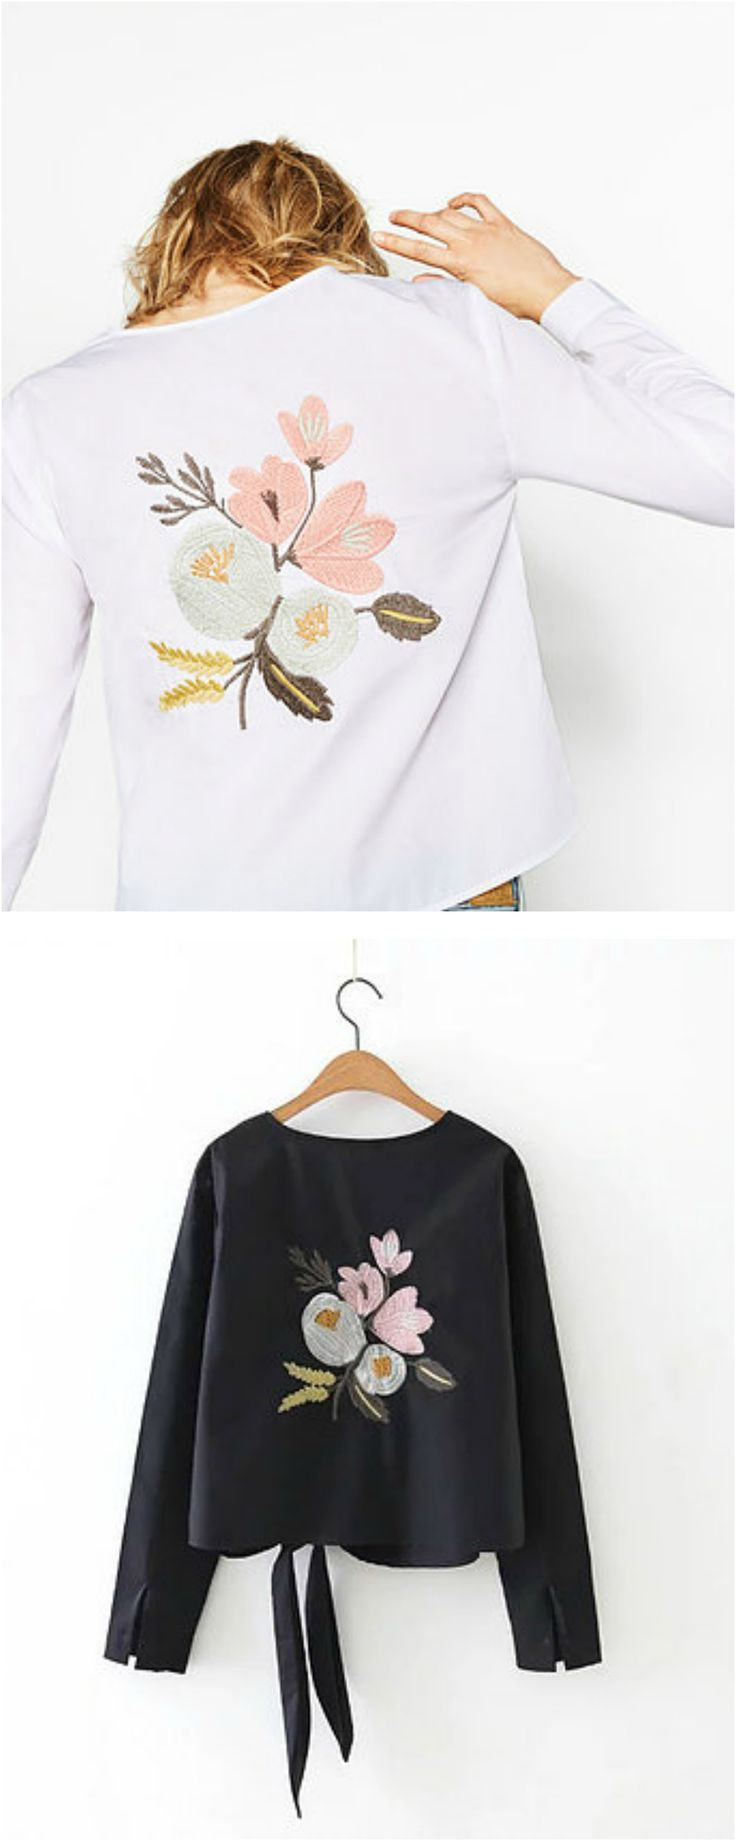 On Sale : $31 - A Boho Chic Long Sleeve Top with Embroidery from Pasaboho. This Boho top exhibit unique design with beautiful embroidered floral. Perfect for a casual day outfit.